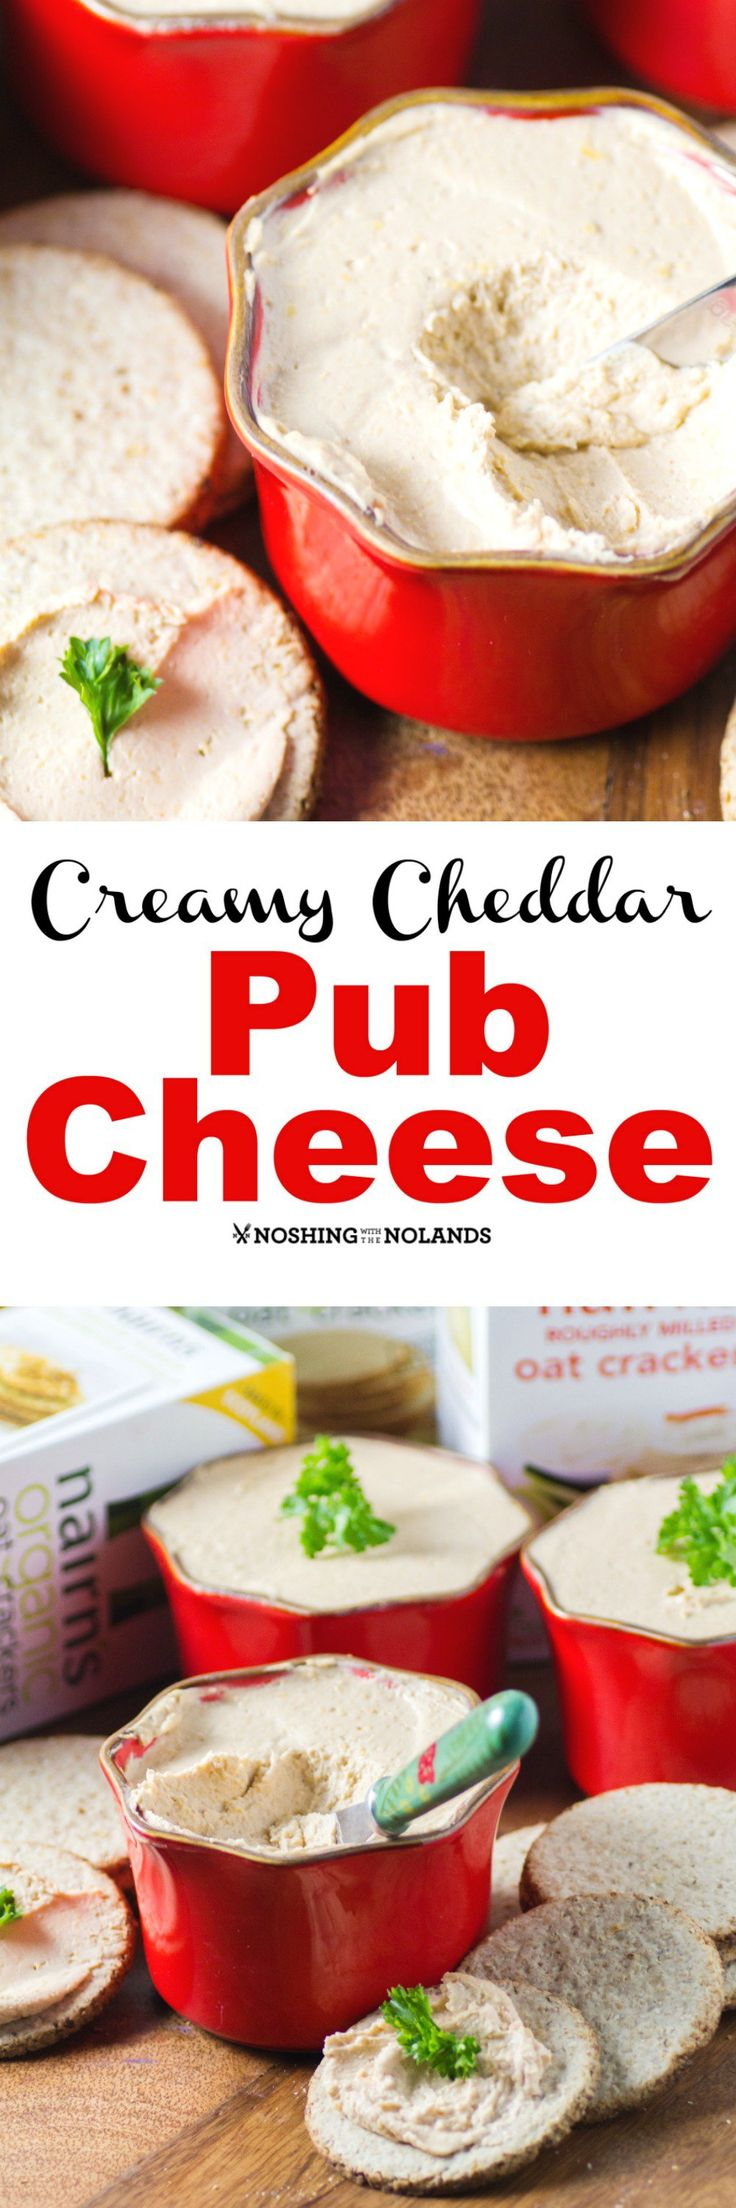 Whether it is a casual get together or a more formal cocktail party, appetizers are always a hit. This Creamy Cheddar Pub Cheese could be served at....